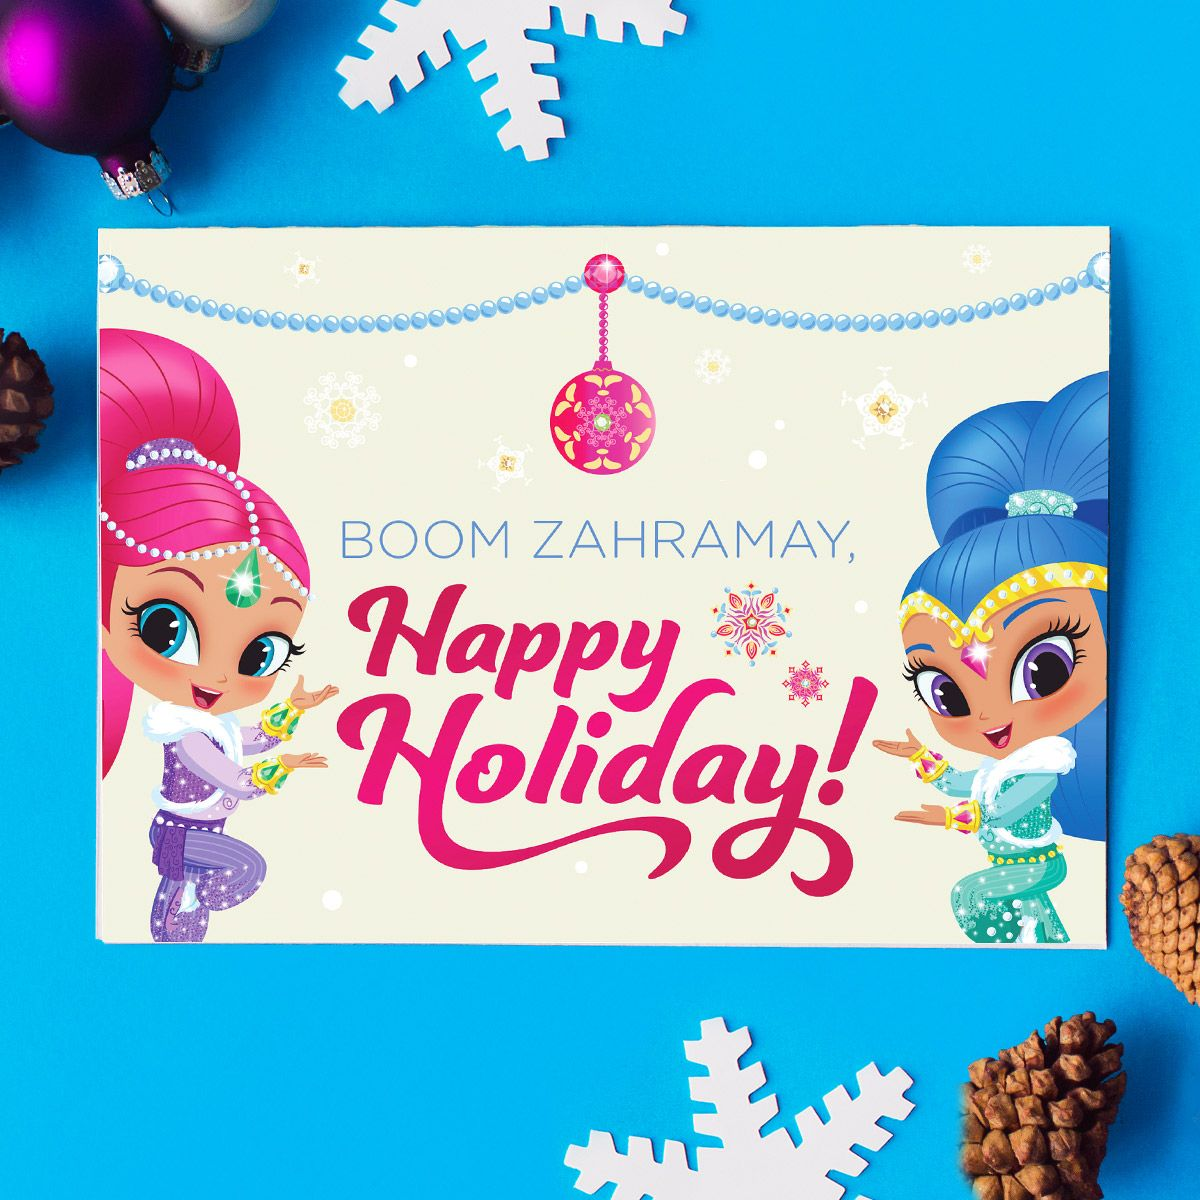 Five nick jr holiday greeting cards nick jr five nick jr holiday greeting cards kristyandbryce Images